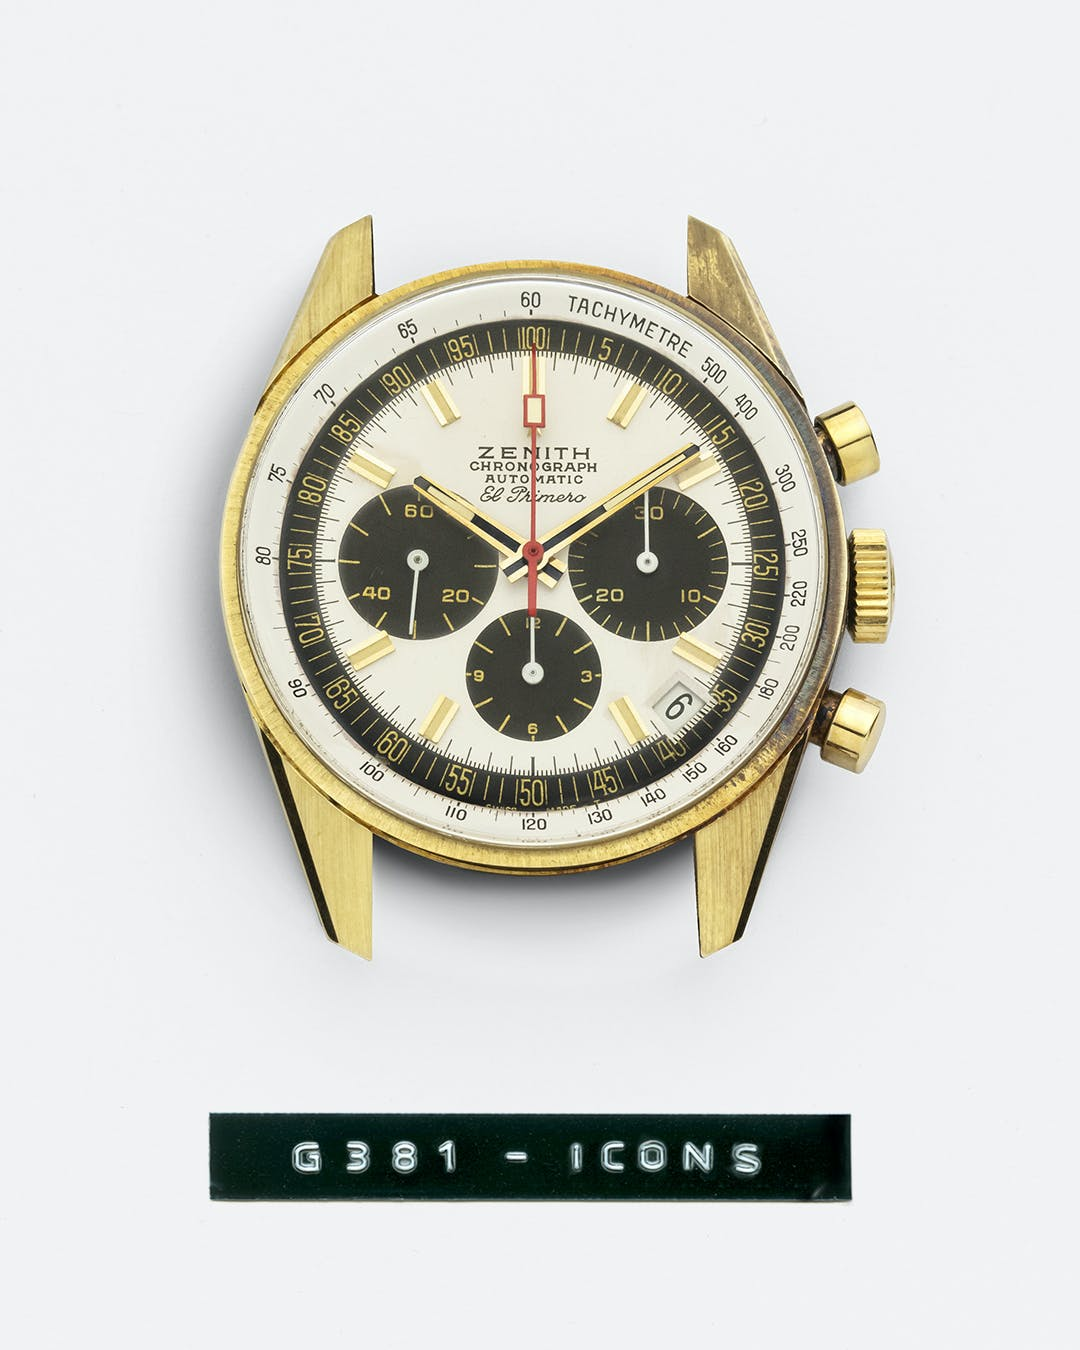 ZENITH BRINGS ITS ICONS COLLECTION OF VINTAGE WATCHES TO ITS ONLINE BOUTIQUE, BEGINNING WITH AN EXCEPTIONALLY UNTOUCHED G381 UNVEILED AT VIVATECH 2021